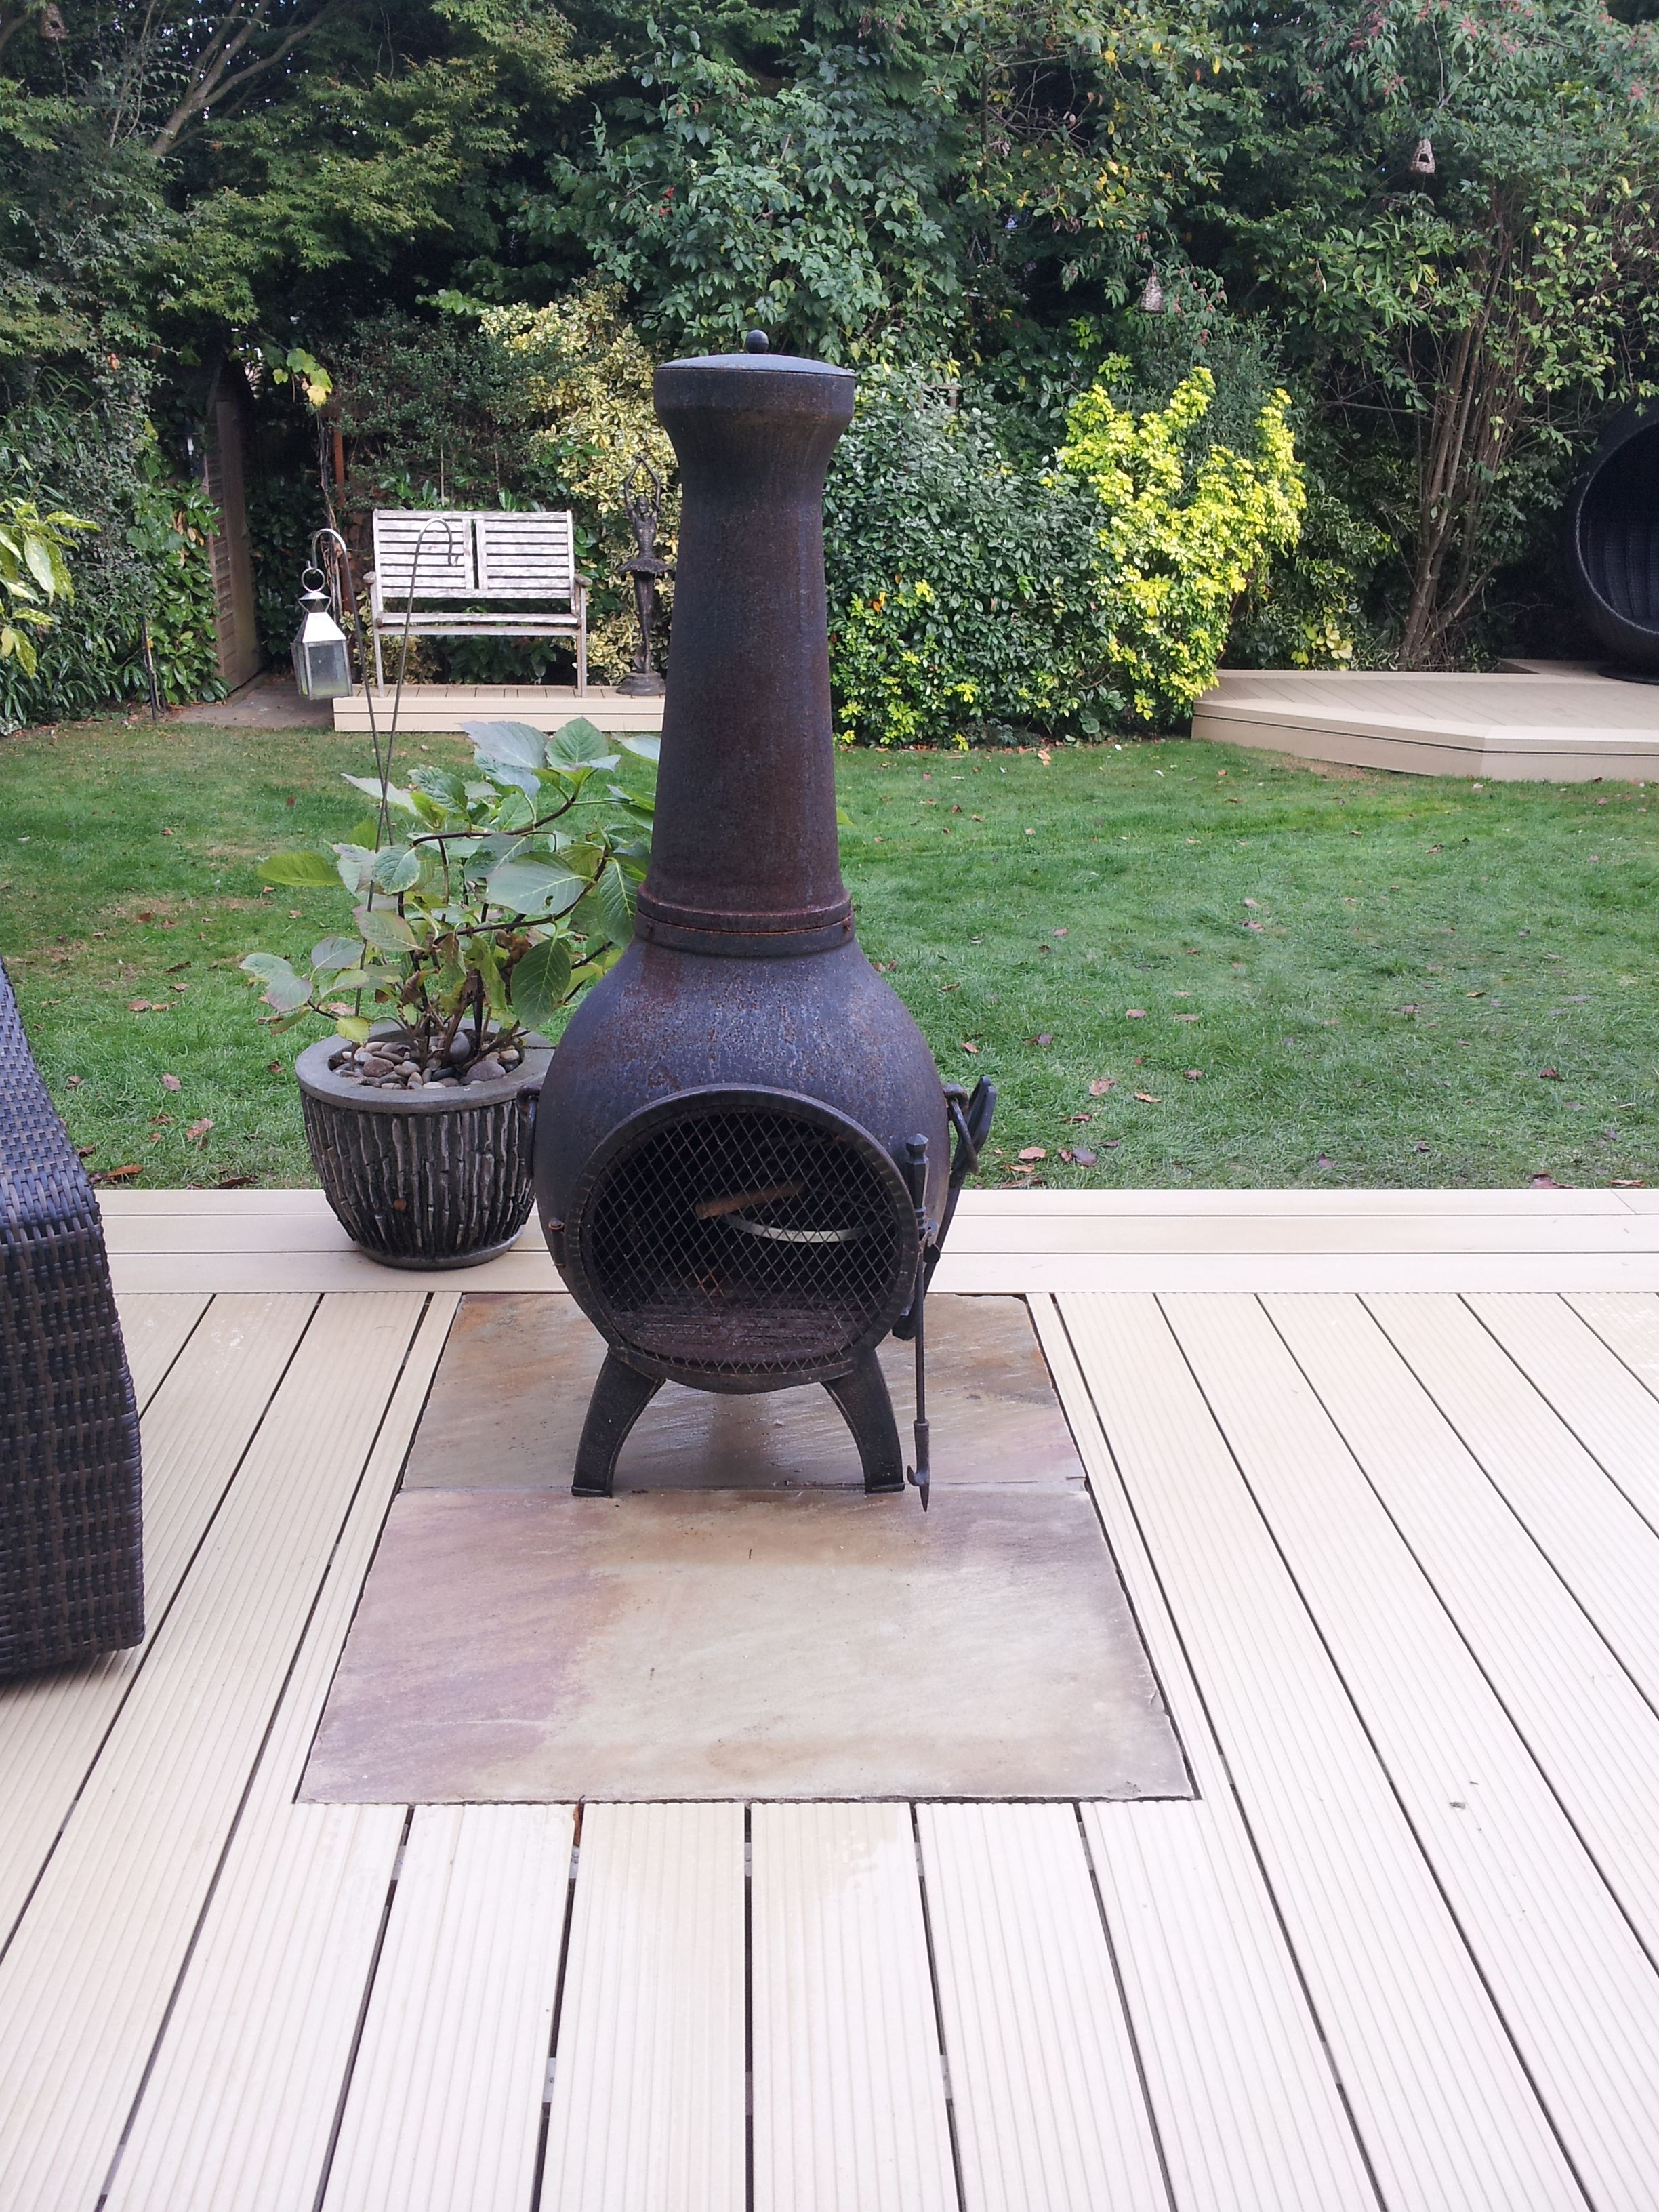 Good Heatproof Sandstone Slabs Used To Create A Home For This Chiminea